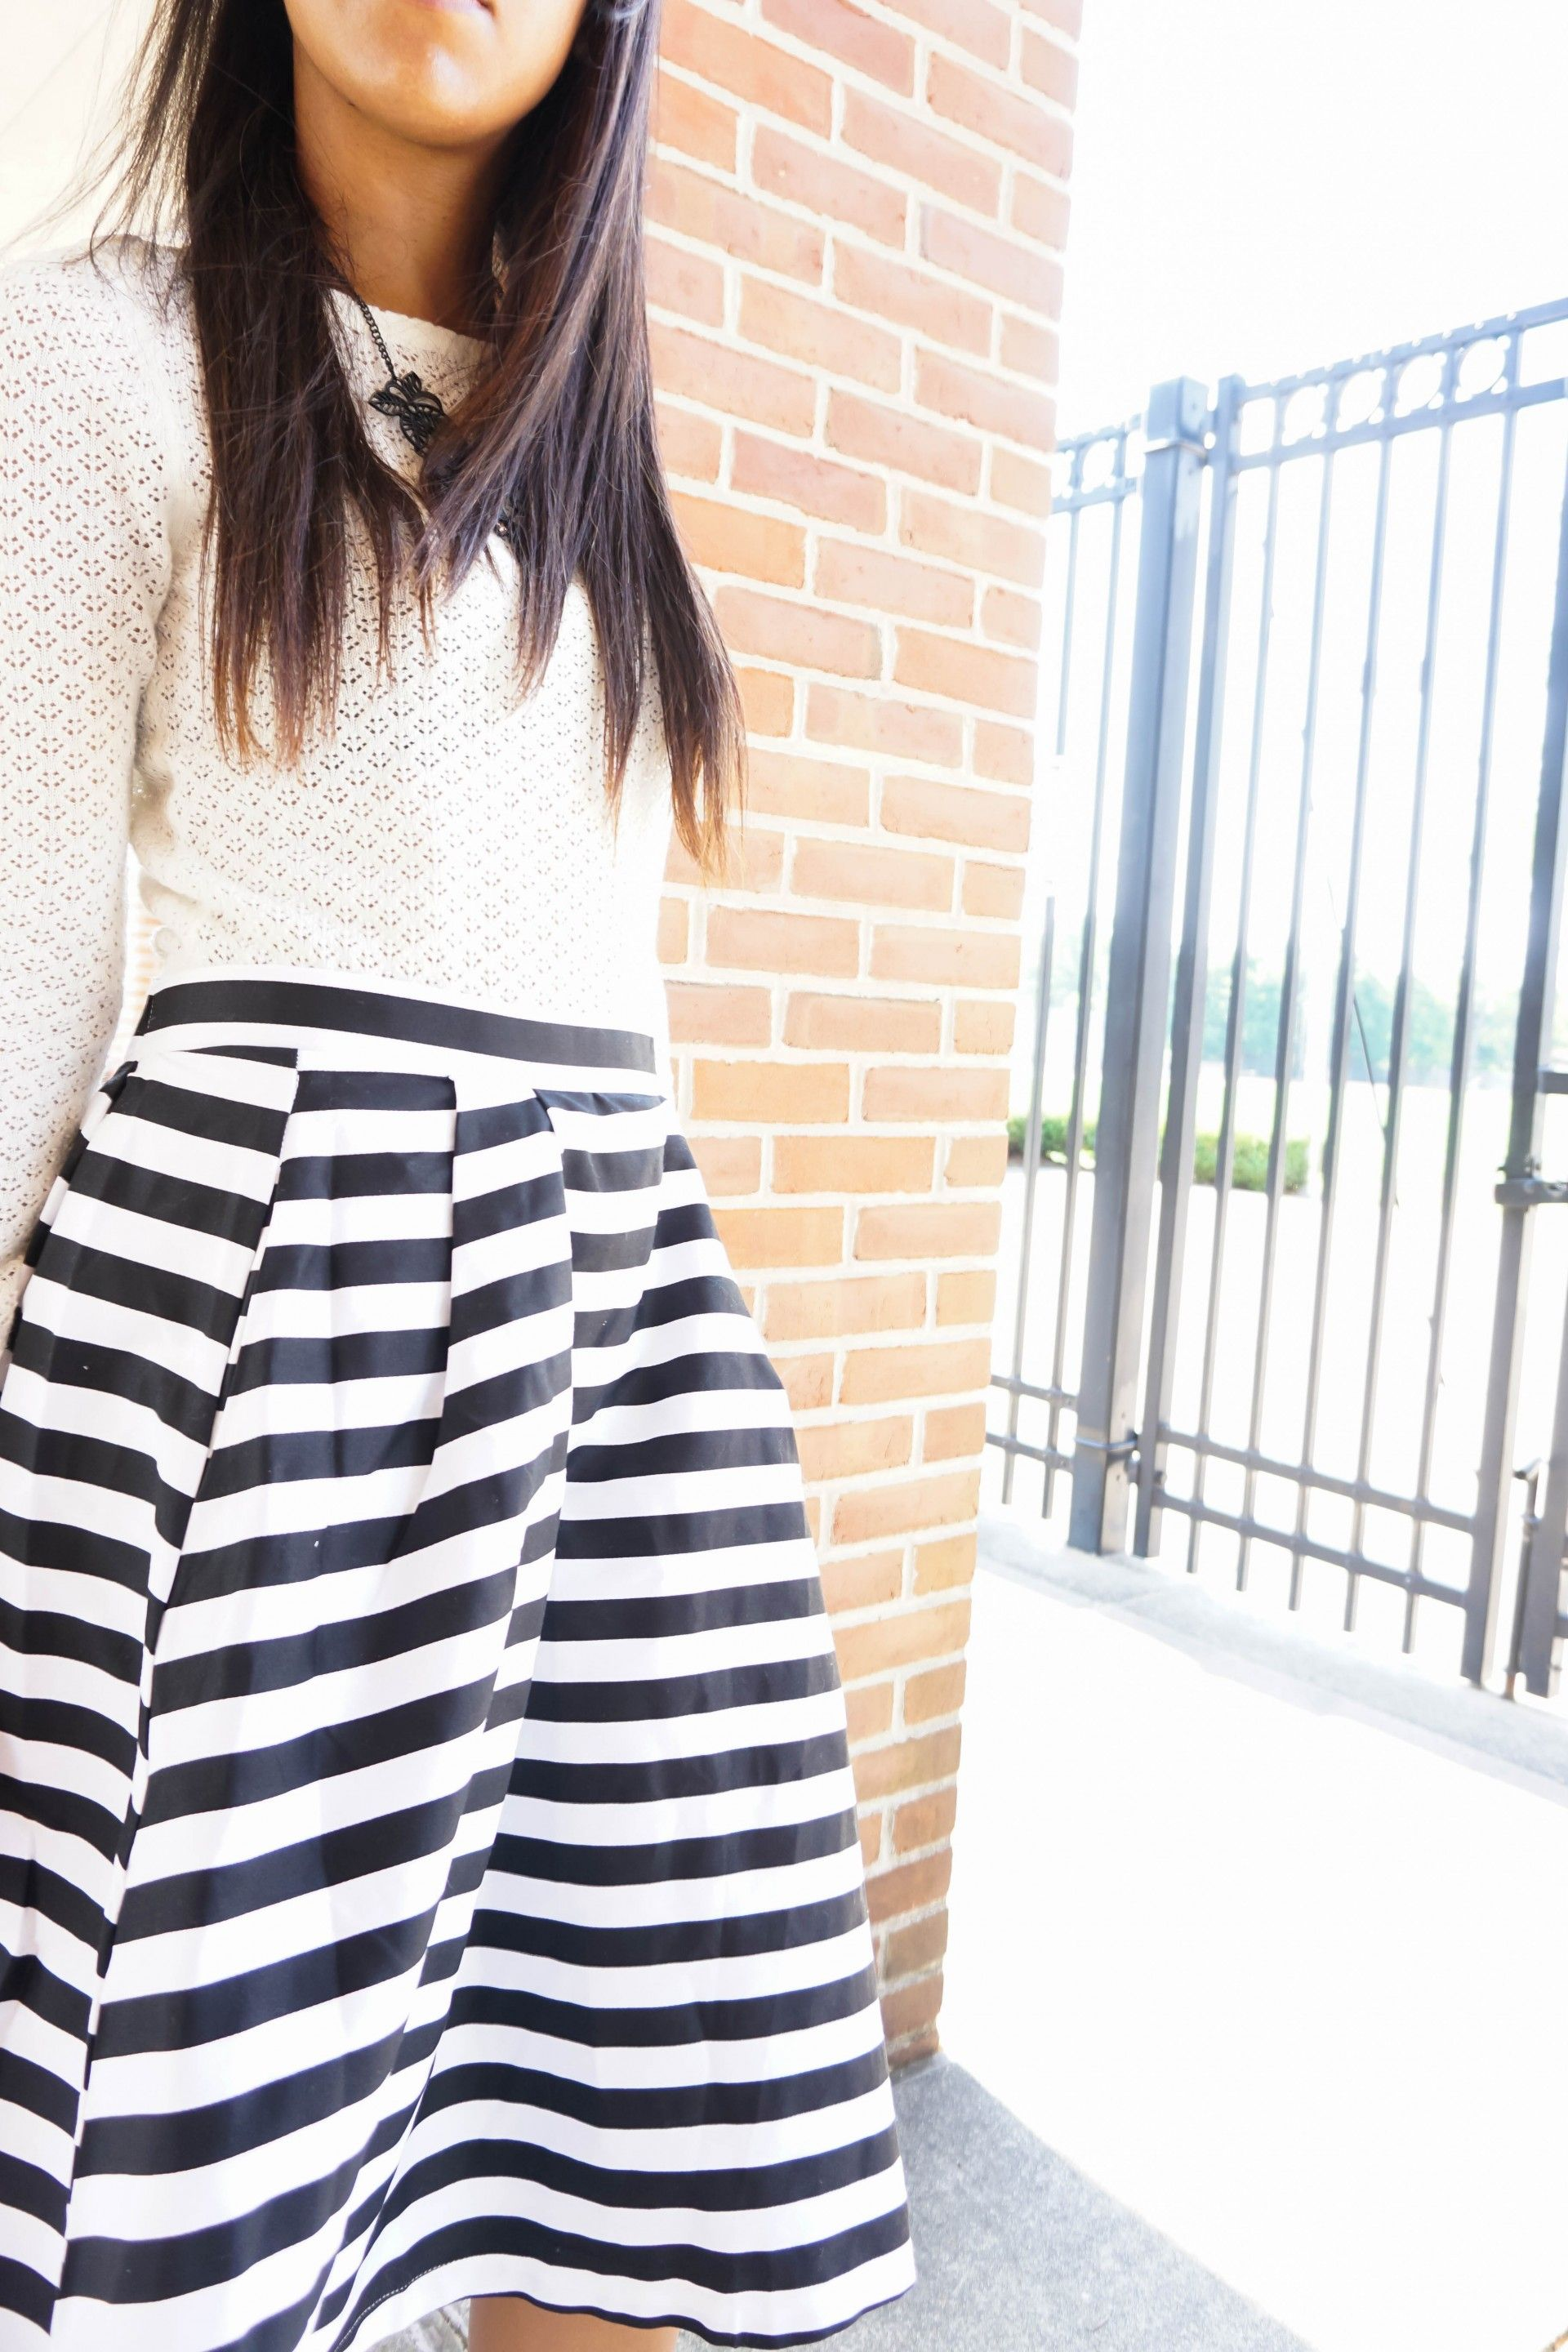 """For your teacher style, you want to make sure to follow the """"rules"""" but   still show off your personality. With Modcloth, your outfits can do just   that. // LivingLesh {@modcloth #ModClothSquad #ad}"""